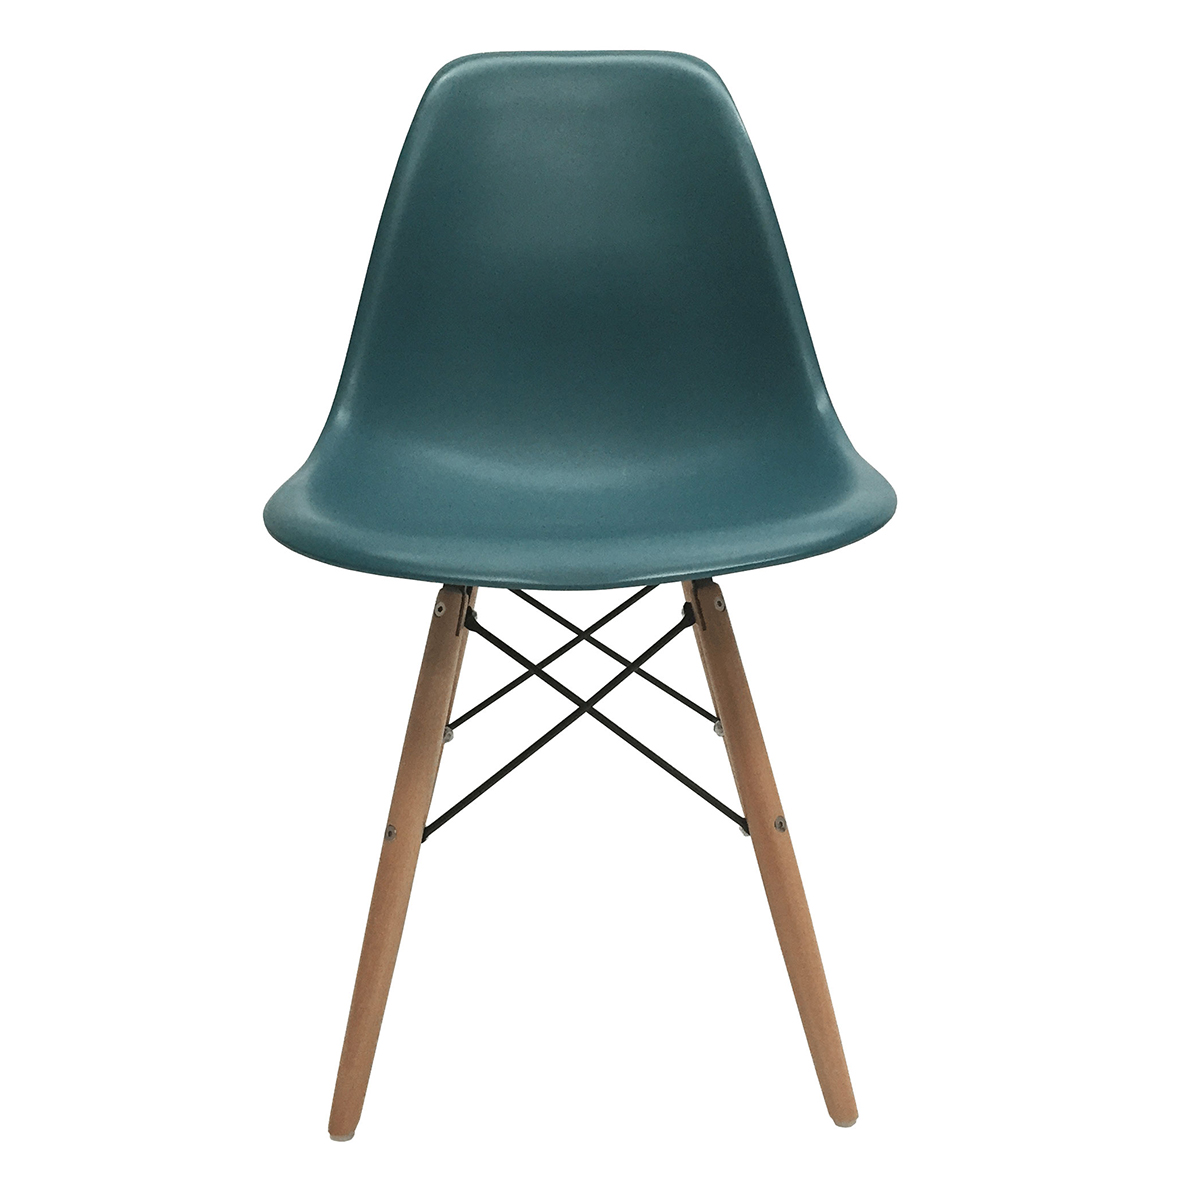 Turquoise Side Chair 4 New Turquoise Eames Style Dsw Wood Leg Side Dining Chair